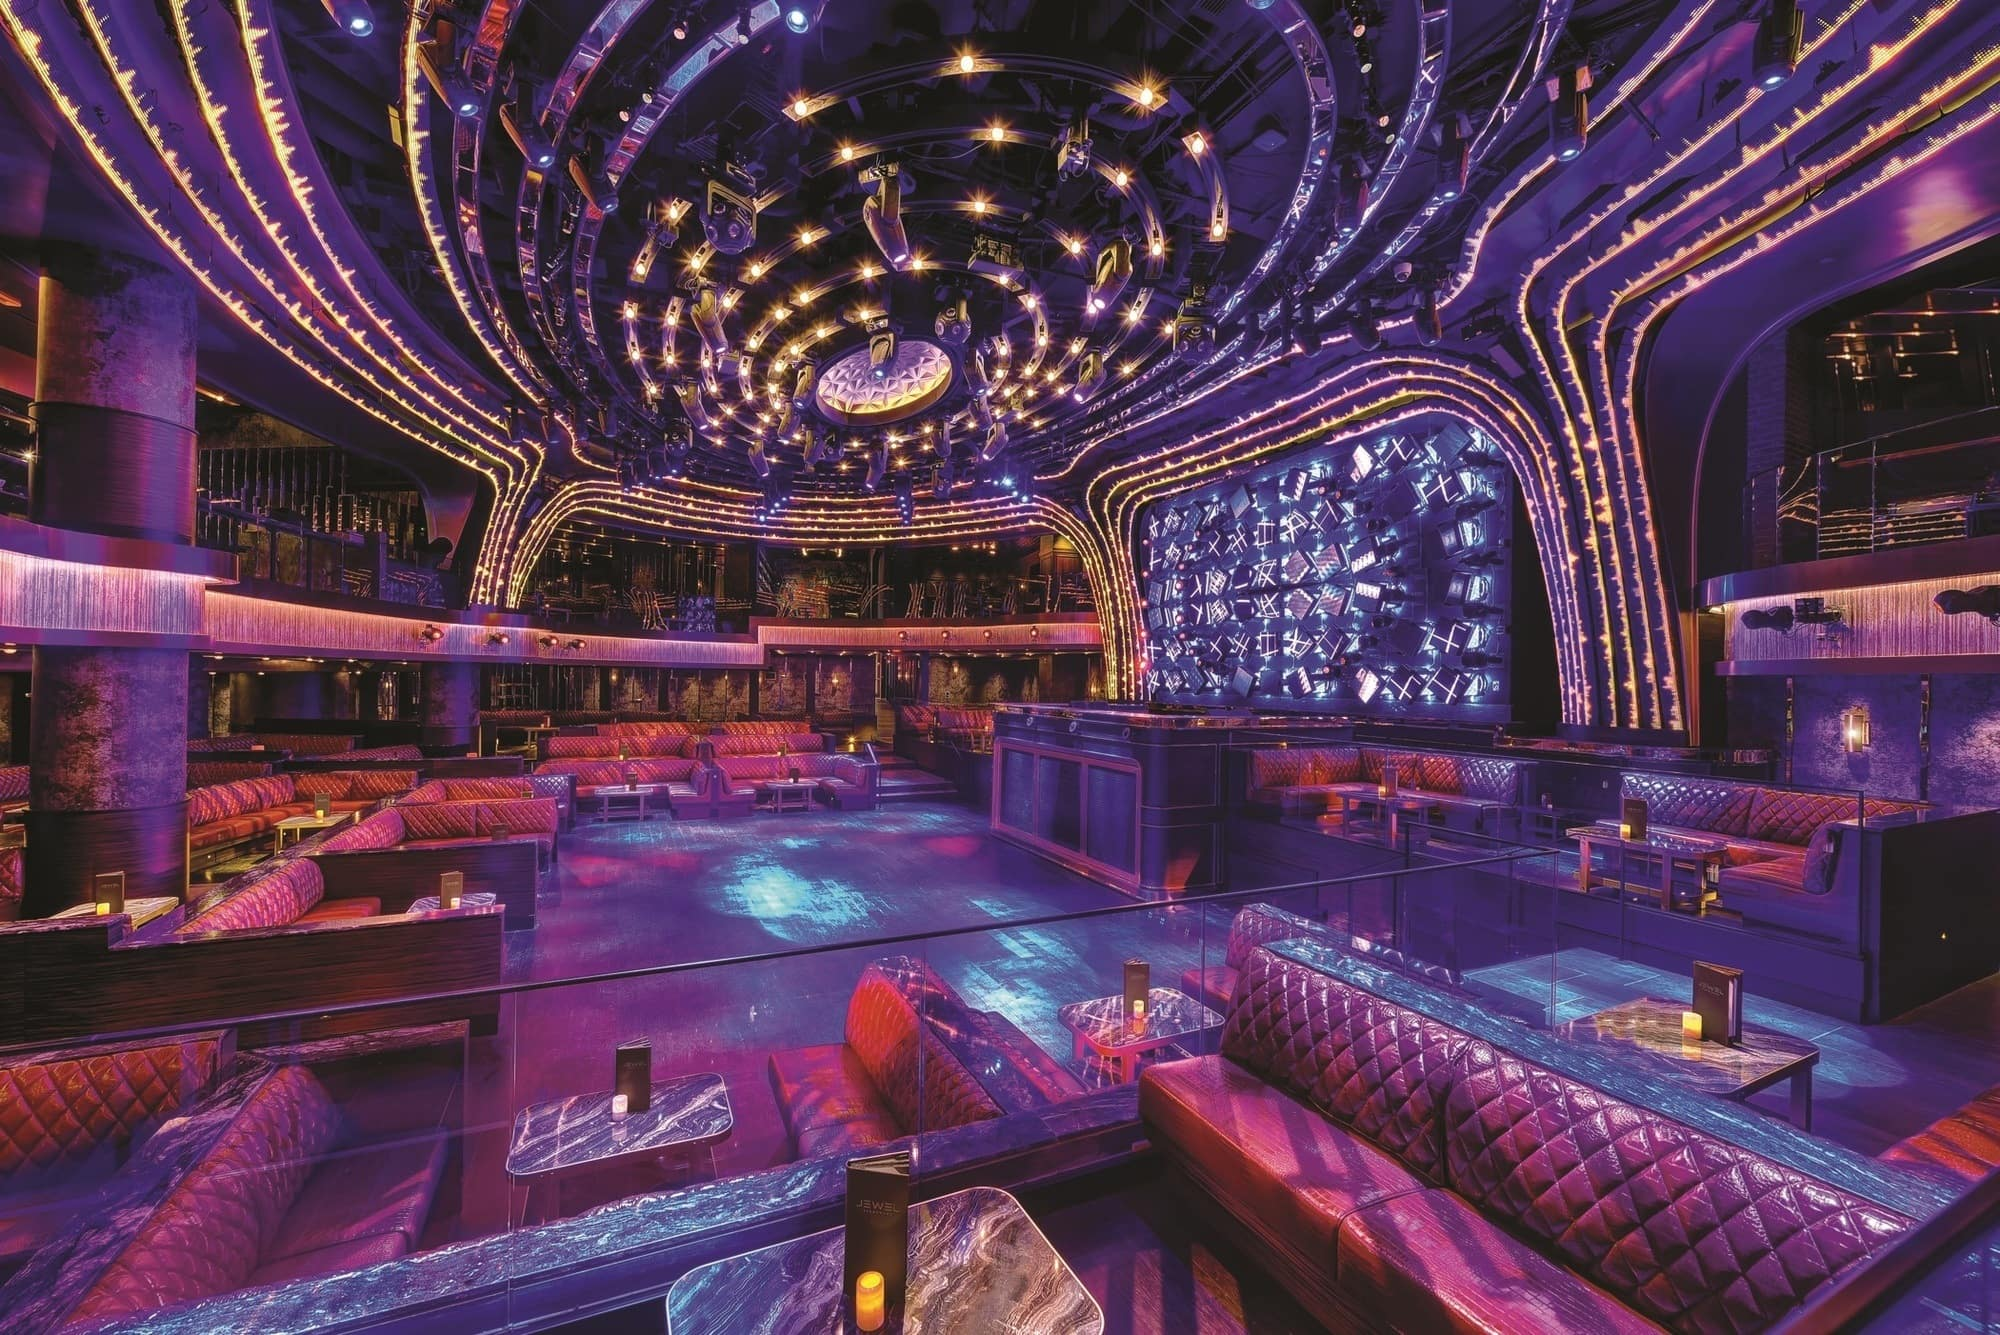 JEWEL at Aria is one of the hottest clubs in Las Vegas